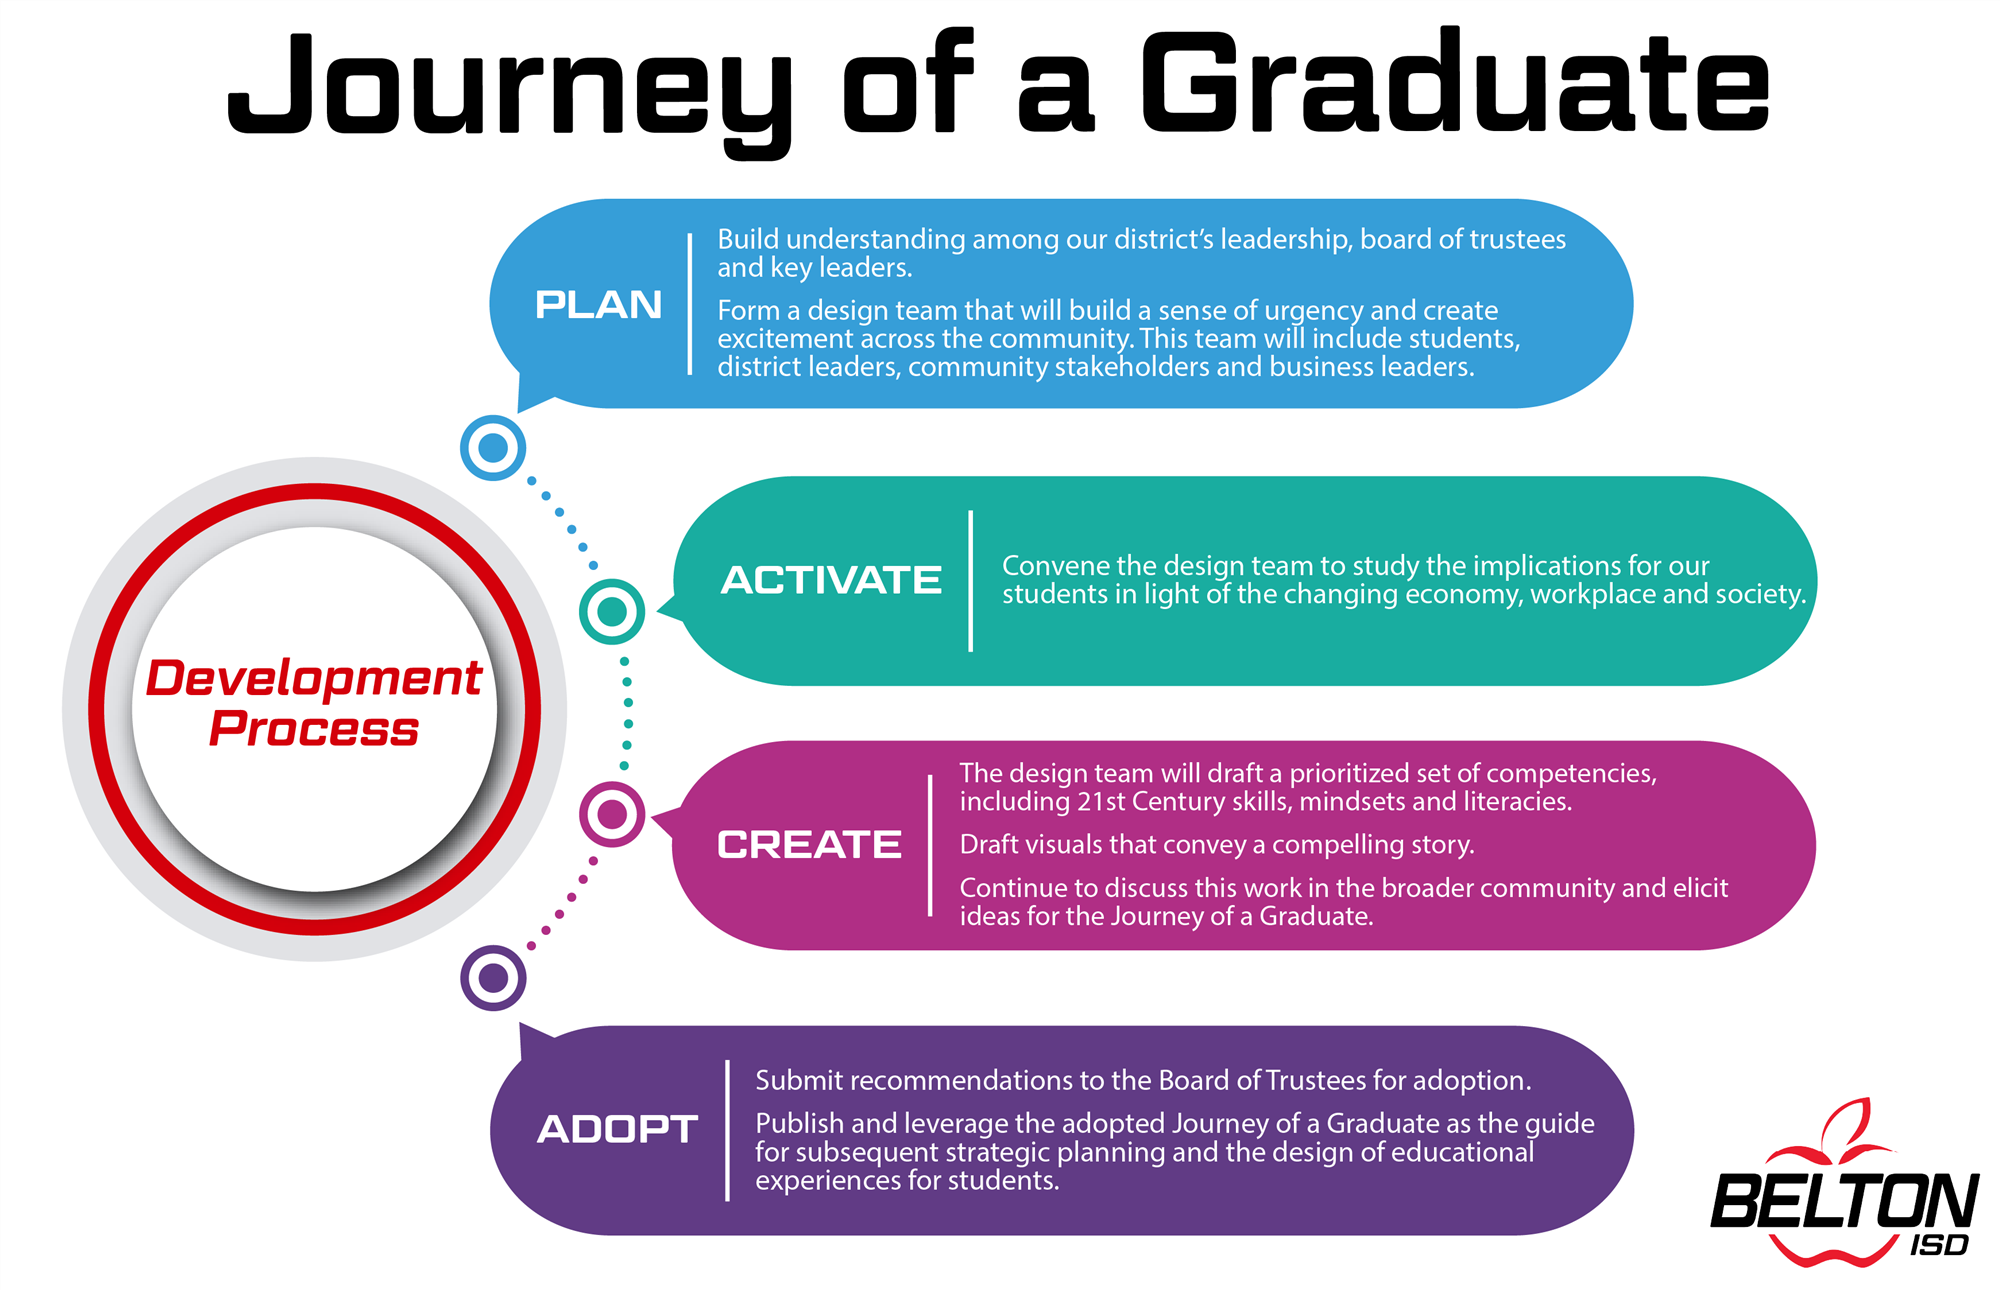 Journey of a Graduate Development Process